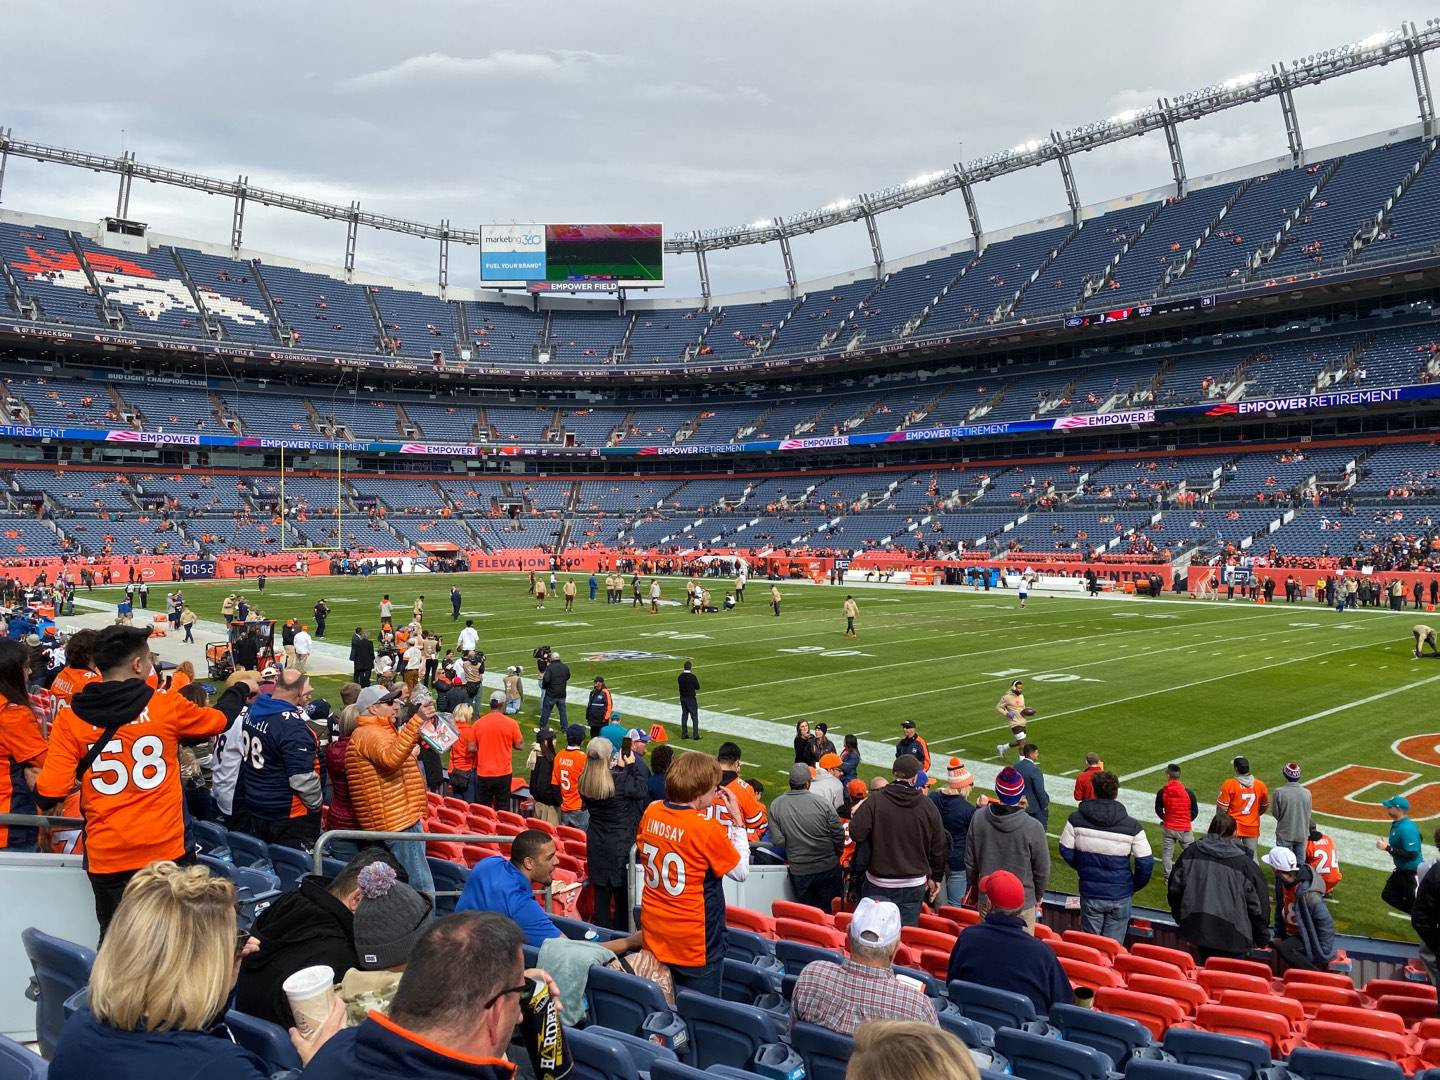 Empower Field at Mile High Stadium Section 100 Row 12 Seat 21